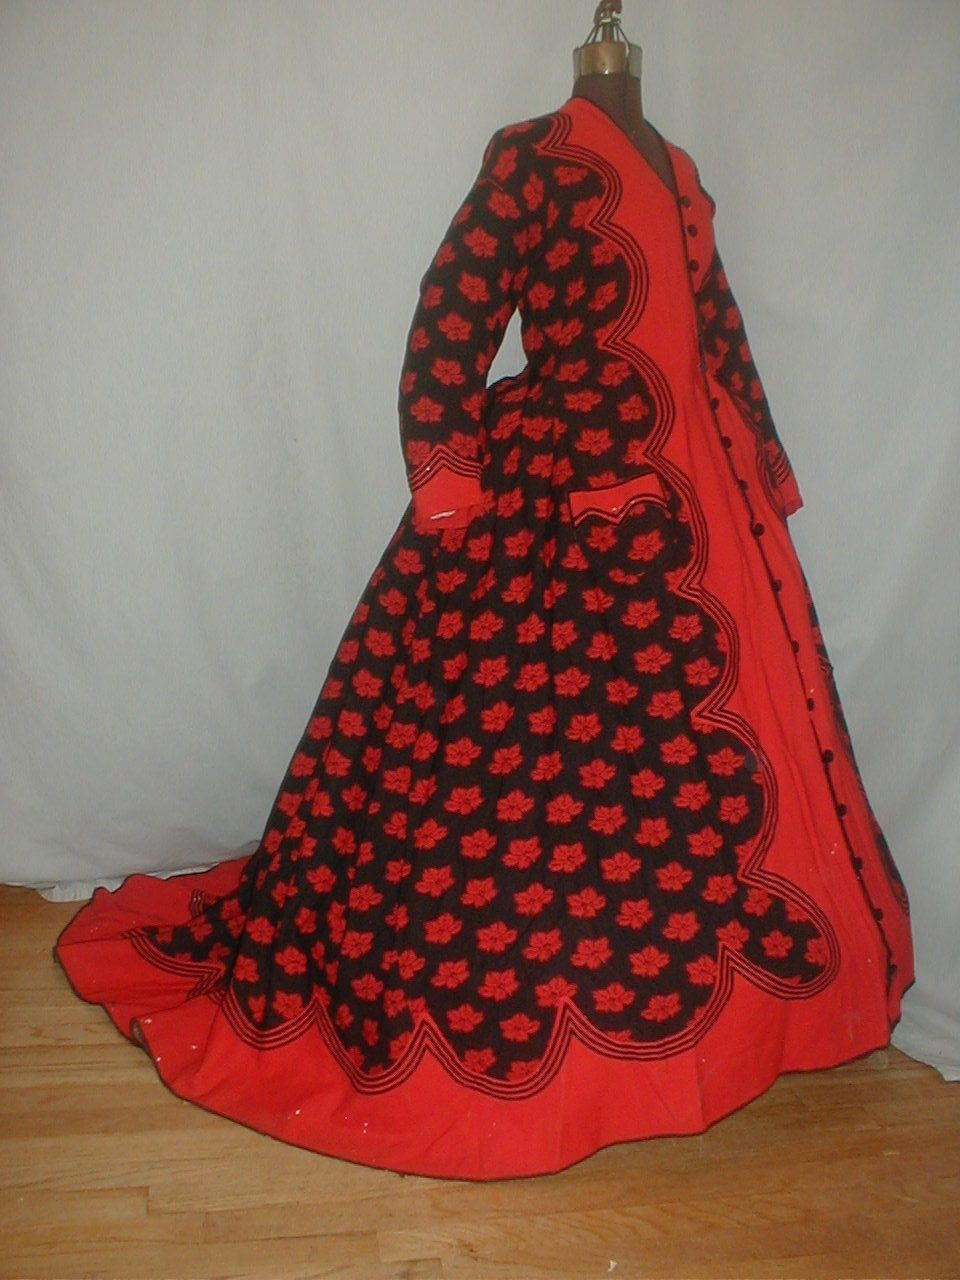 All The Pretty Dresses: Mid 1860's Red and Black Wrapper Gown